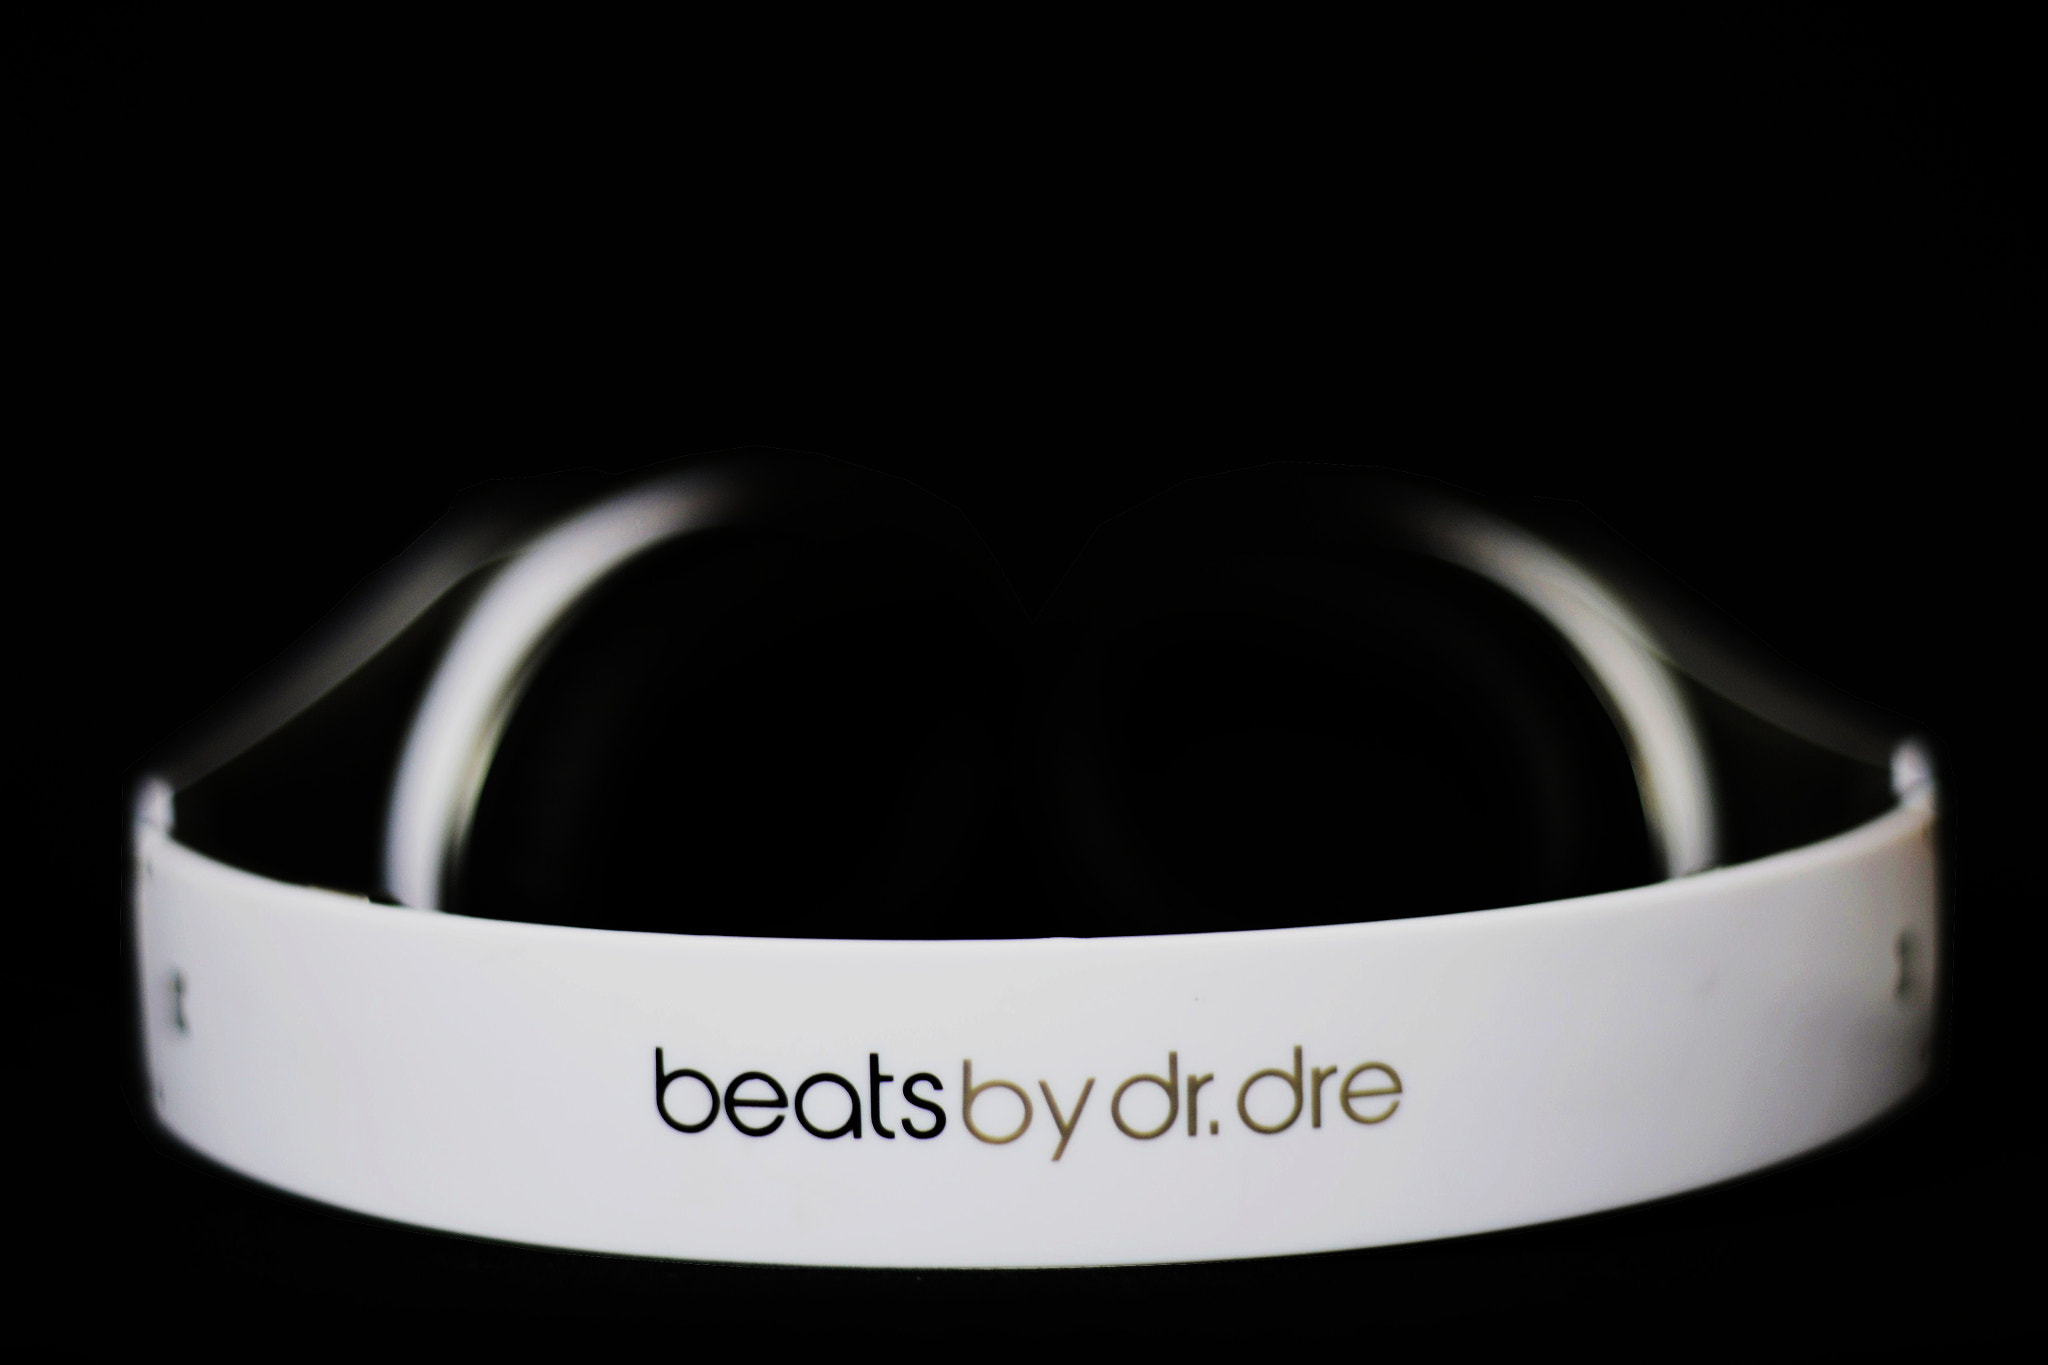 Photograph Beats by dr.dre -Studio by Arham Omar on 500px